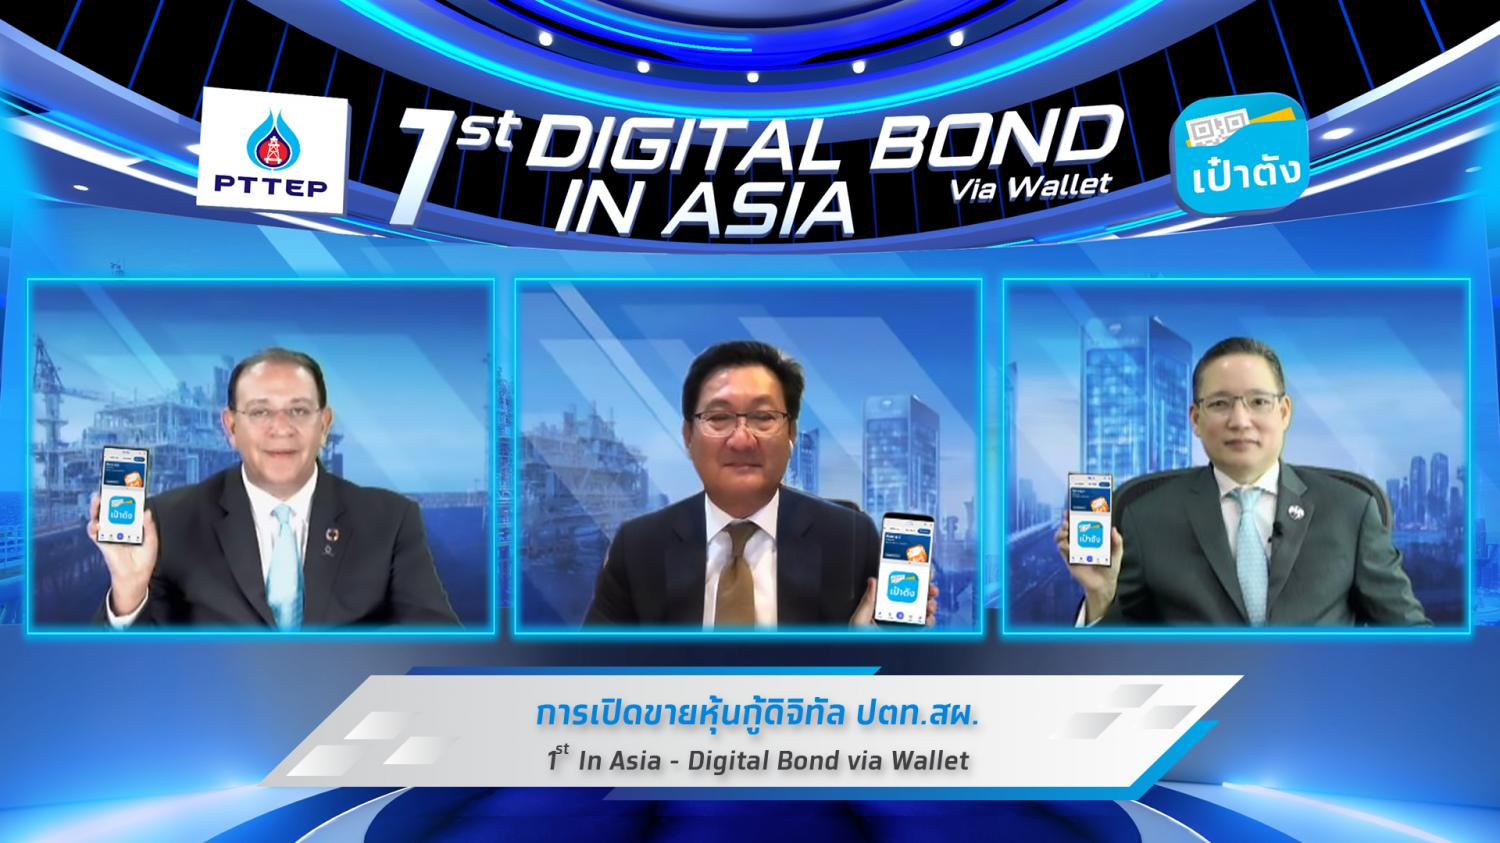 From left are Mr Montri, Pakorn Peetathawatchai, president of the Stock Exchange of Thailand, and Mr Payong. The executives are promoting PTTEP's digital bond, with investment via the Pao Tang mobile app.